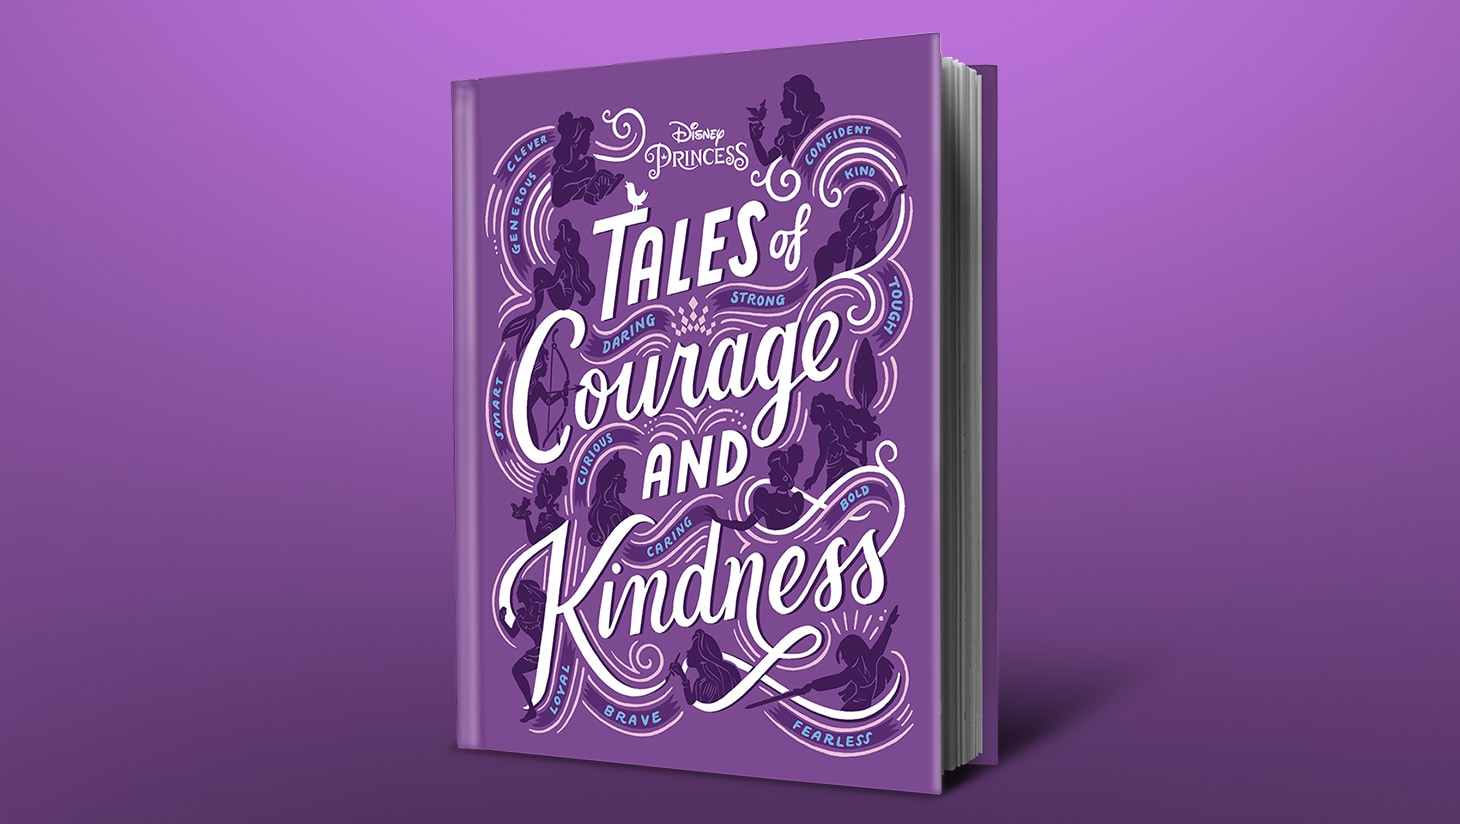 Disney Princess Tales of Courage and Kindness hardcover book